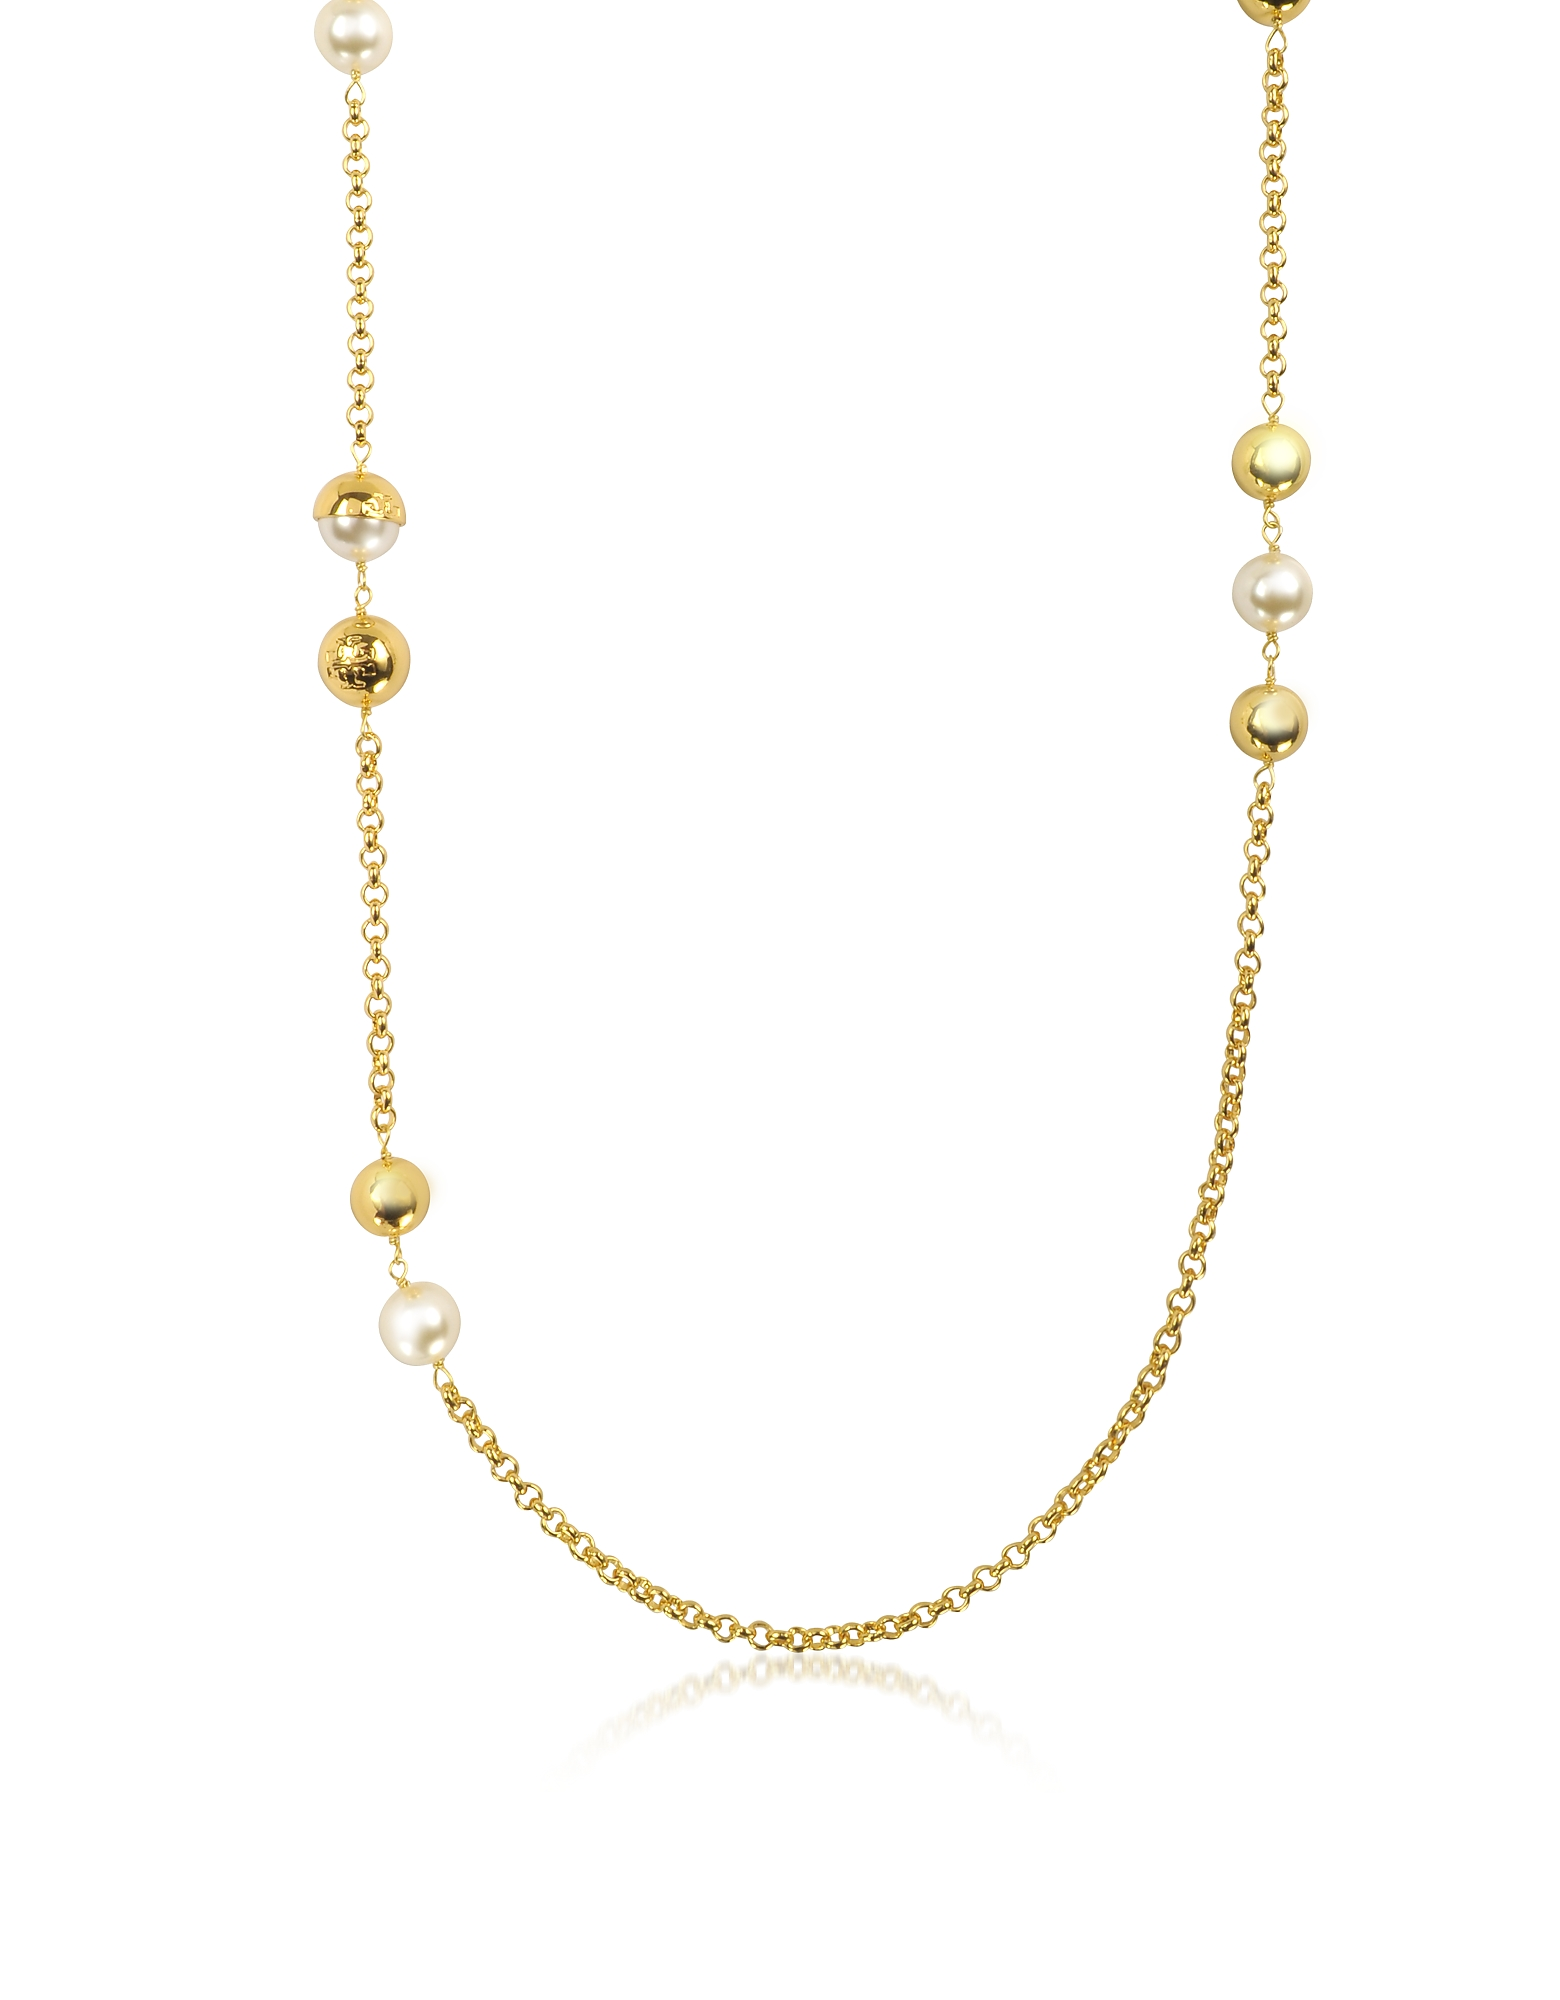 Tory Burch Necklaces, Capped Crystal Pearl Chain Rosary Necklace